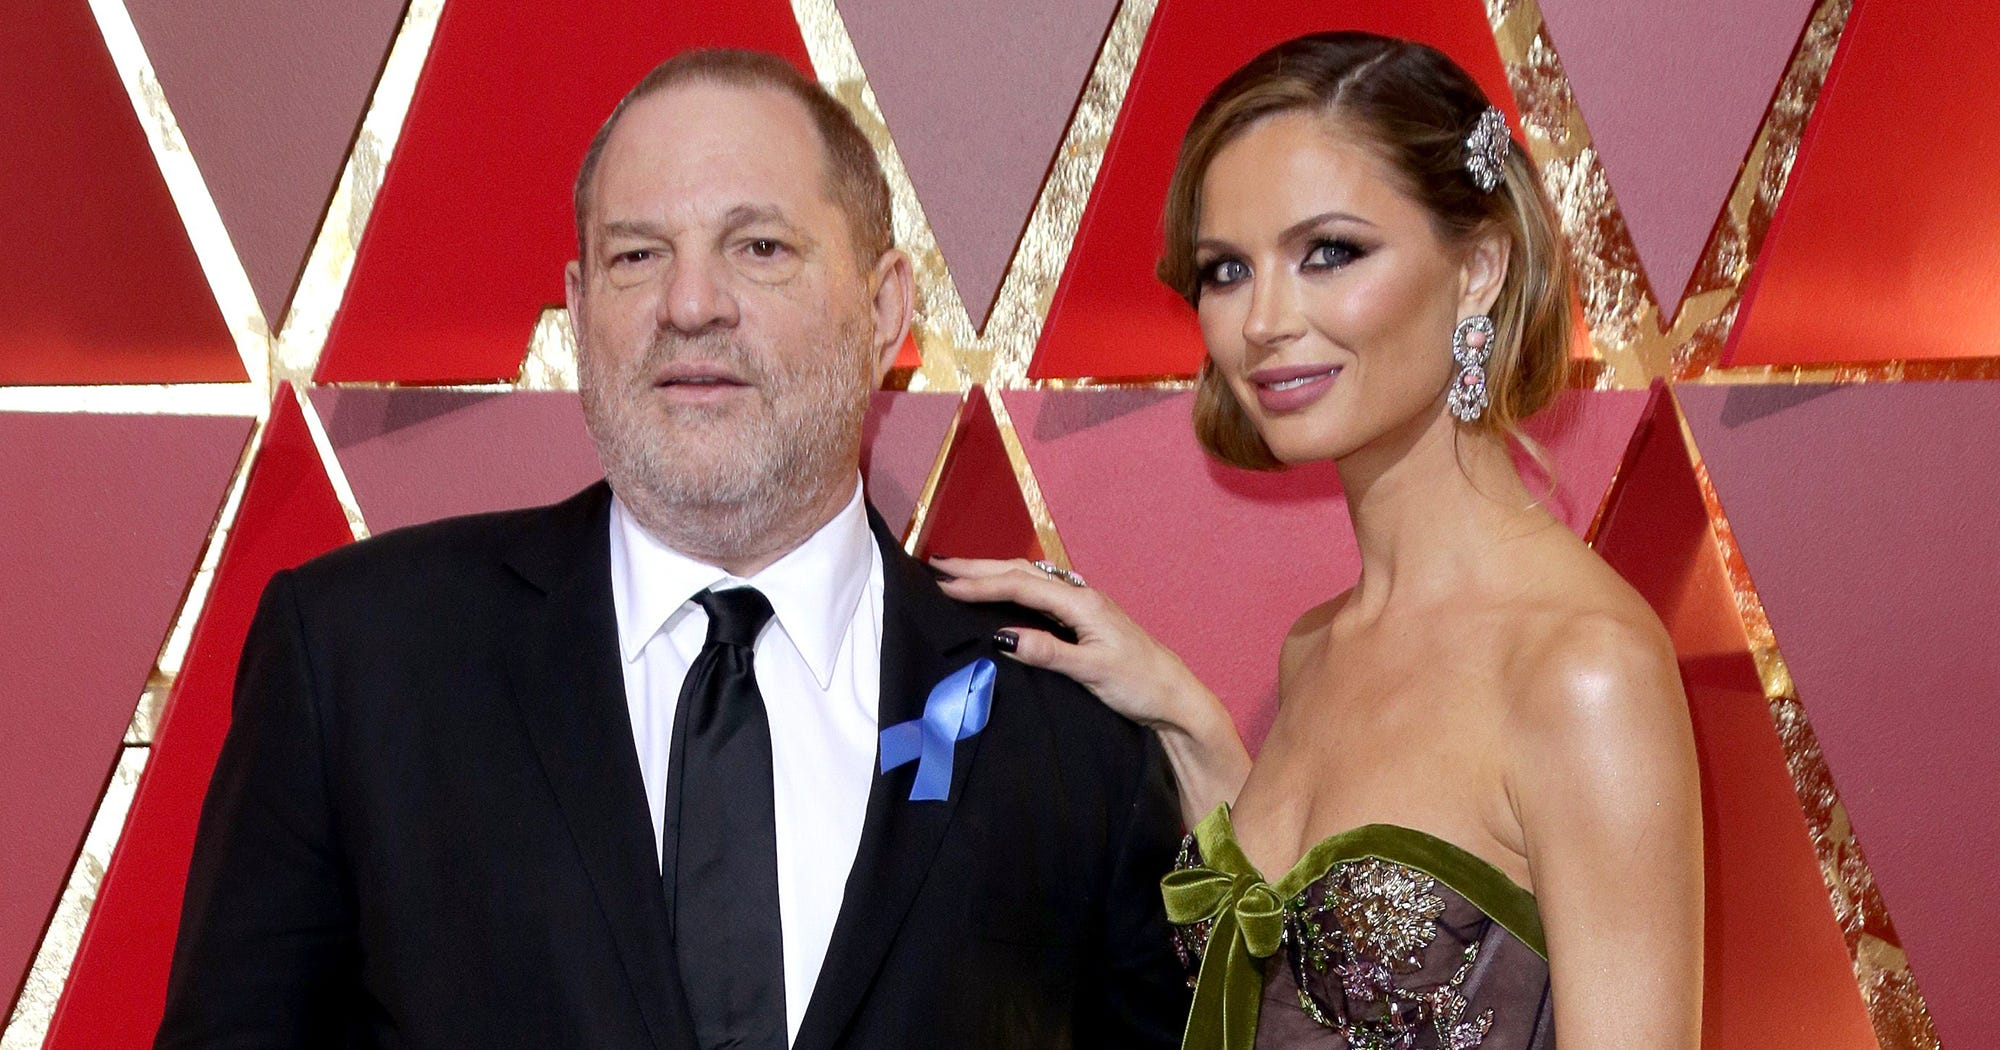 Harvey Weinstein's Wife Georgina Chapman Confirms She Is Leaving Him Following Allegations